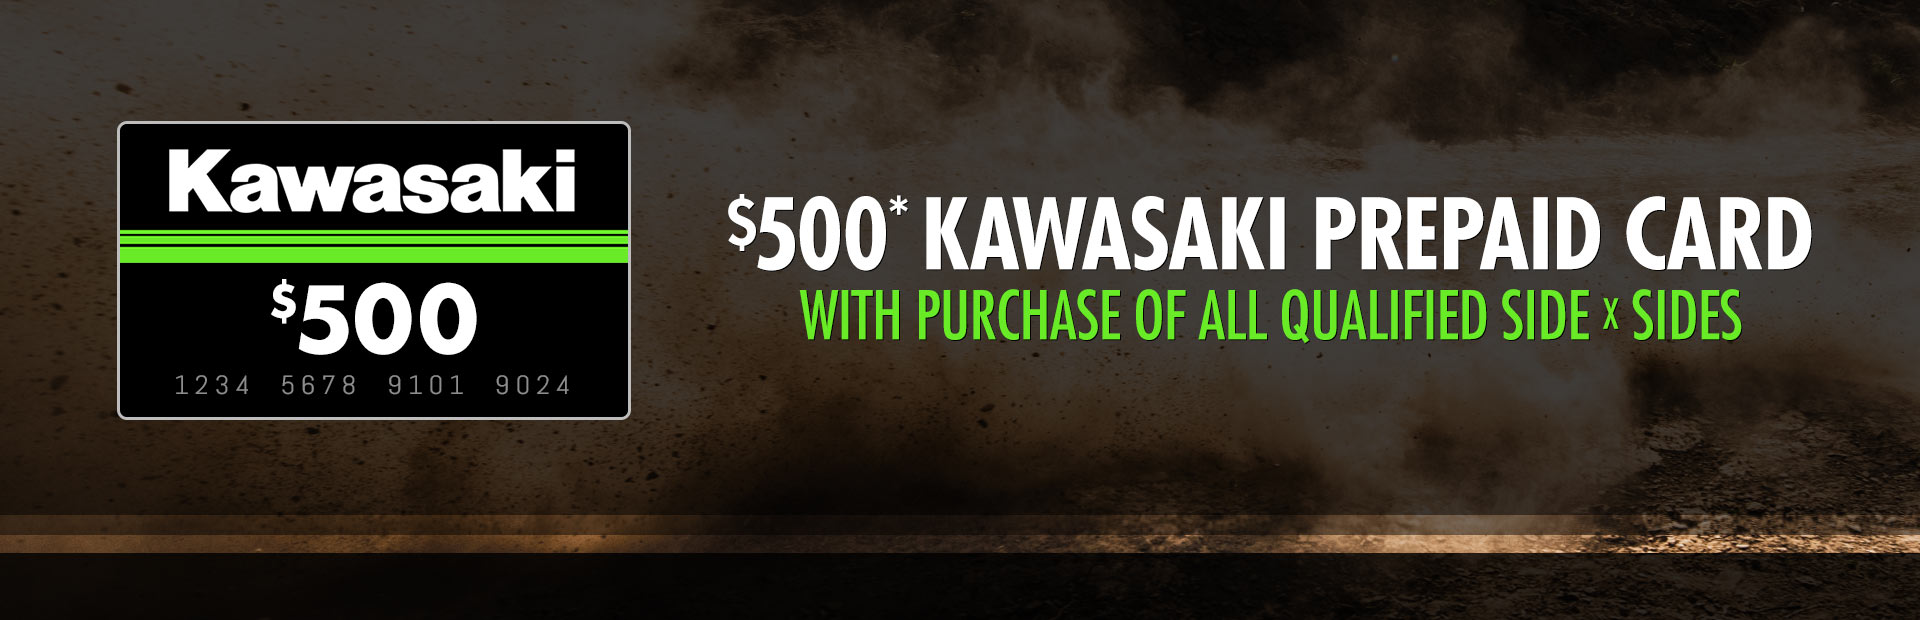 Kawasaki: $500* Kawasaki Prepaid Card with Purchase of SXS